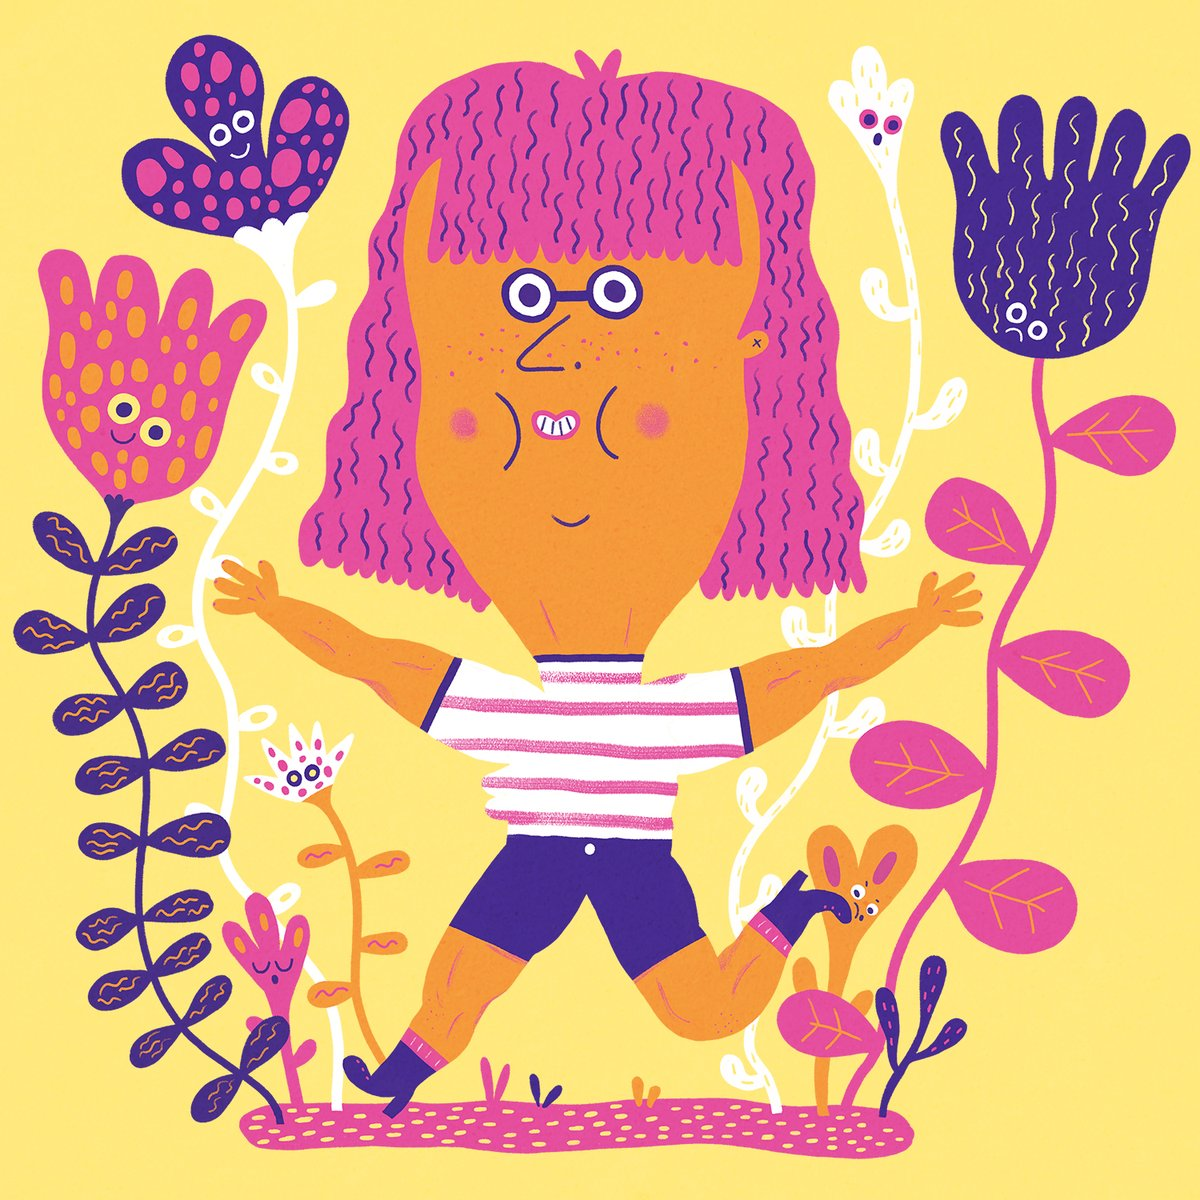 SELF PORTRAIT Running and flowers make up 90% of my personality!